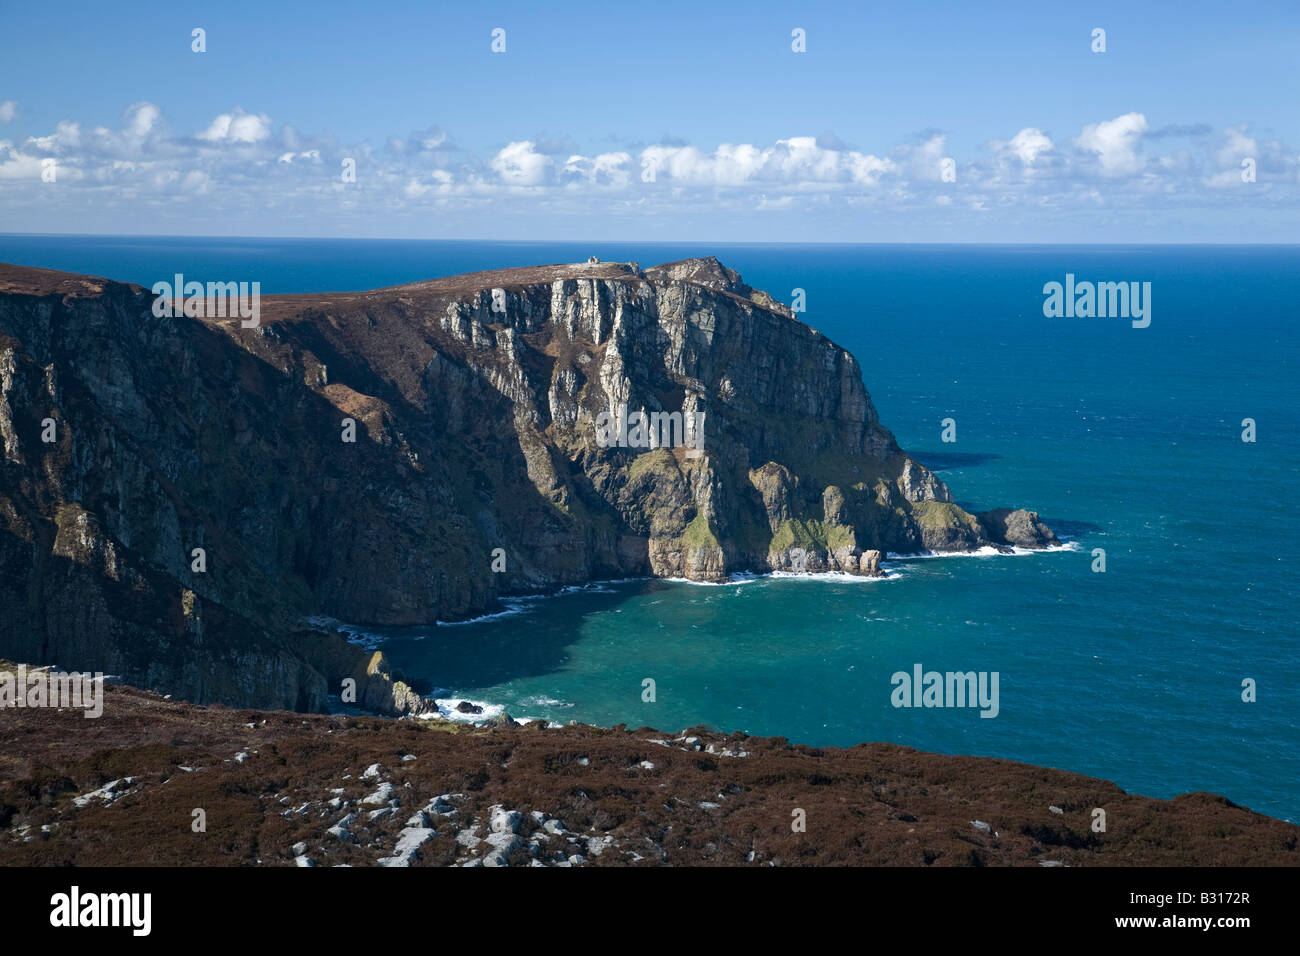 The cliffs of Horn Head, near Dunfanaghy, County Donegal, Ireland. - Stock Image